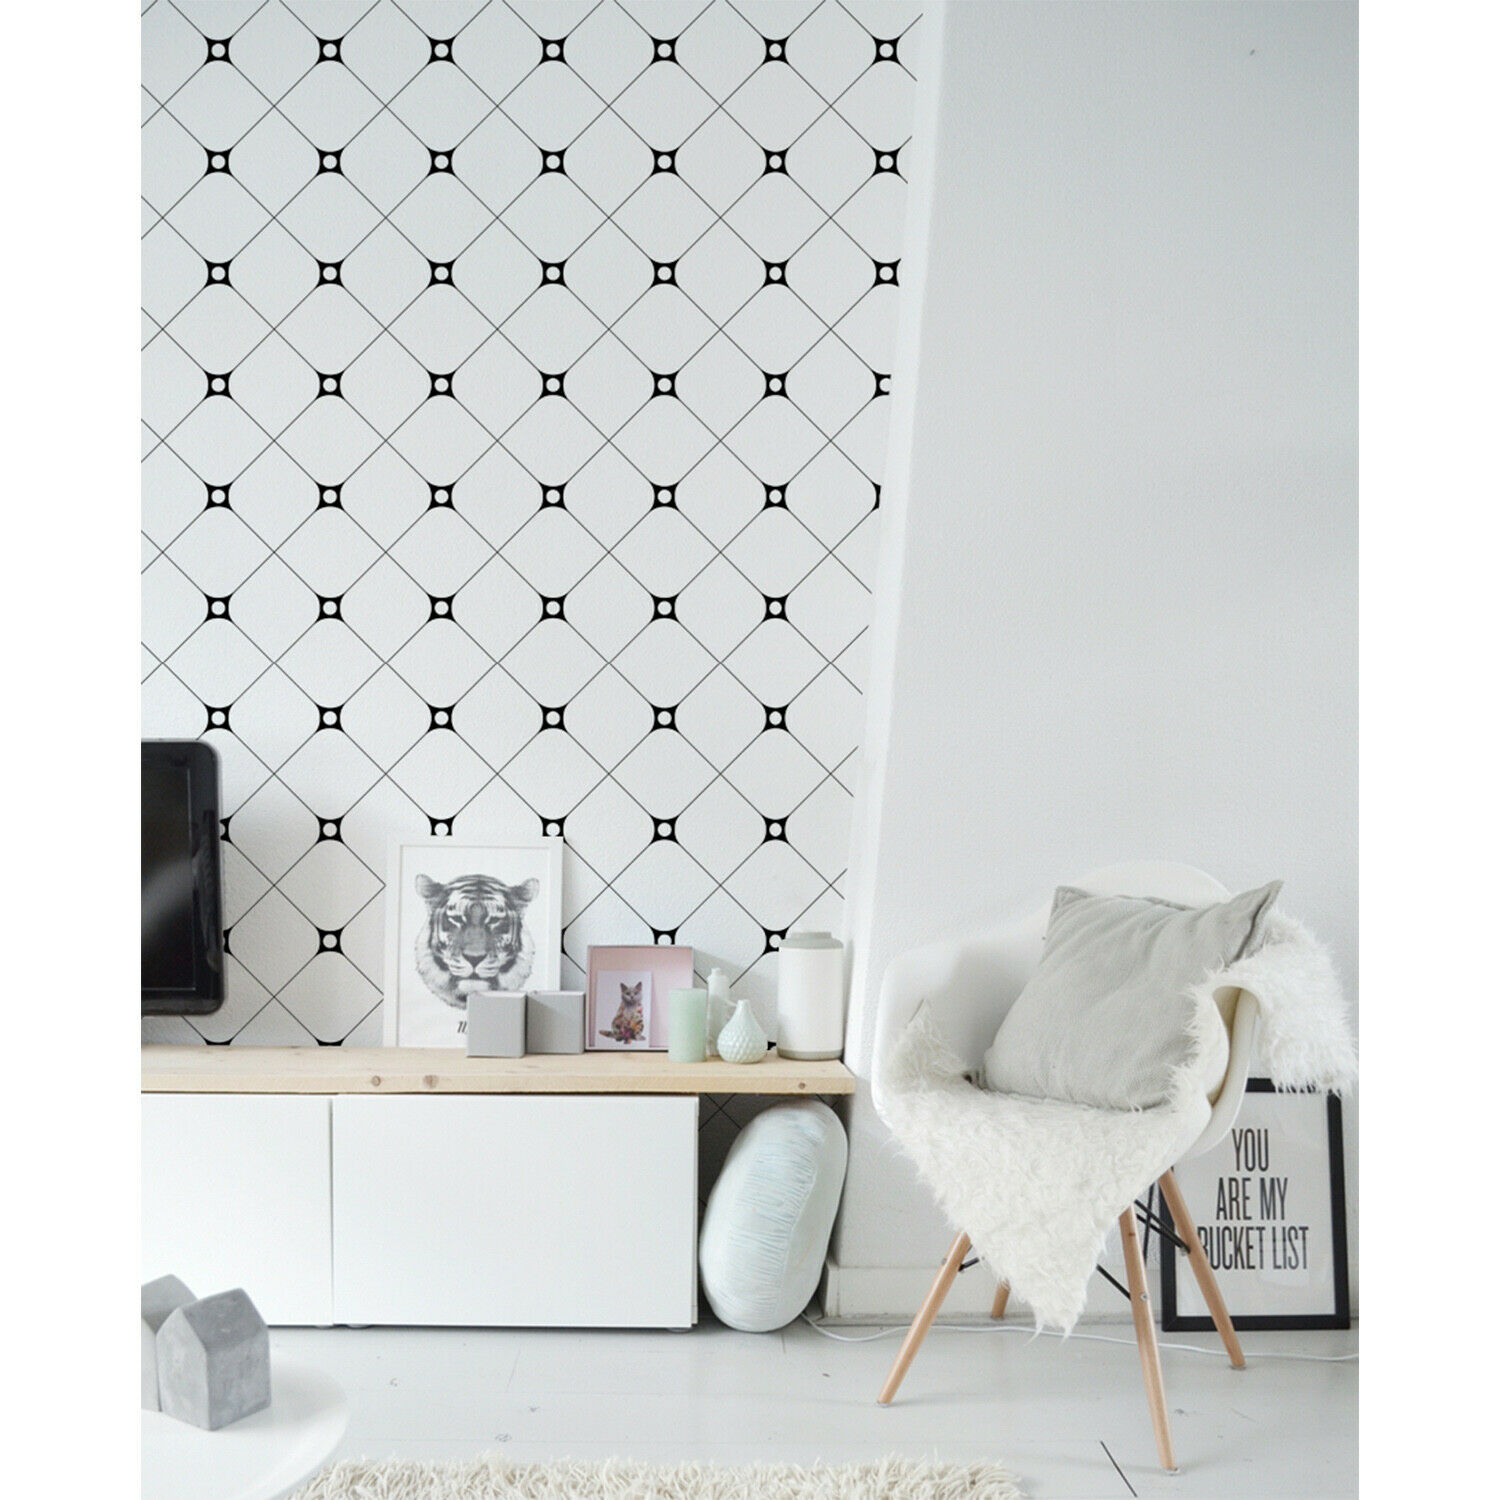 Connected Squares Wallpaper  Wall covering Geometry Pattern wall Home Mural